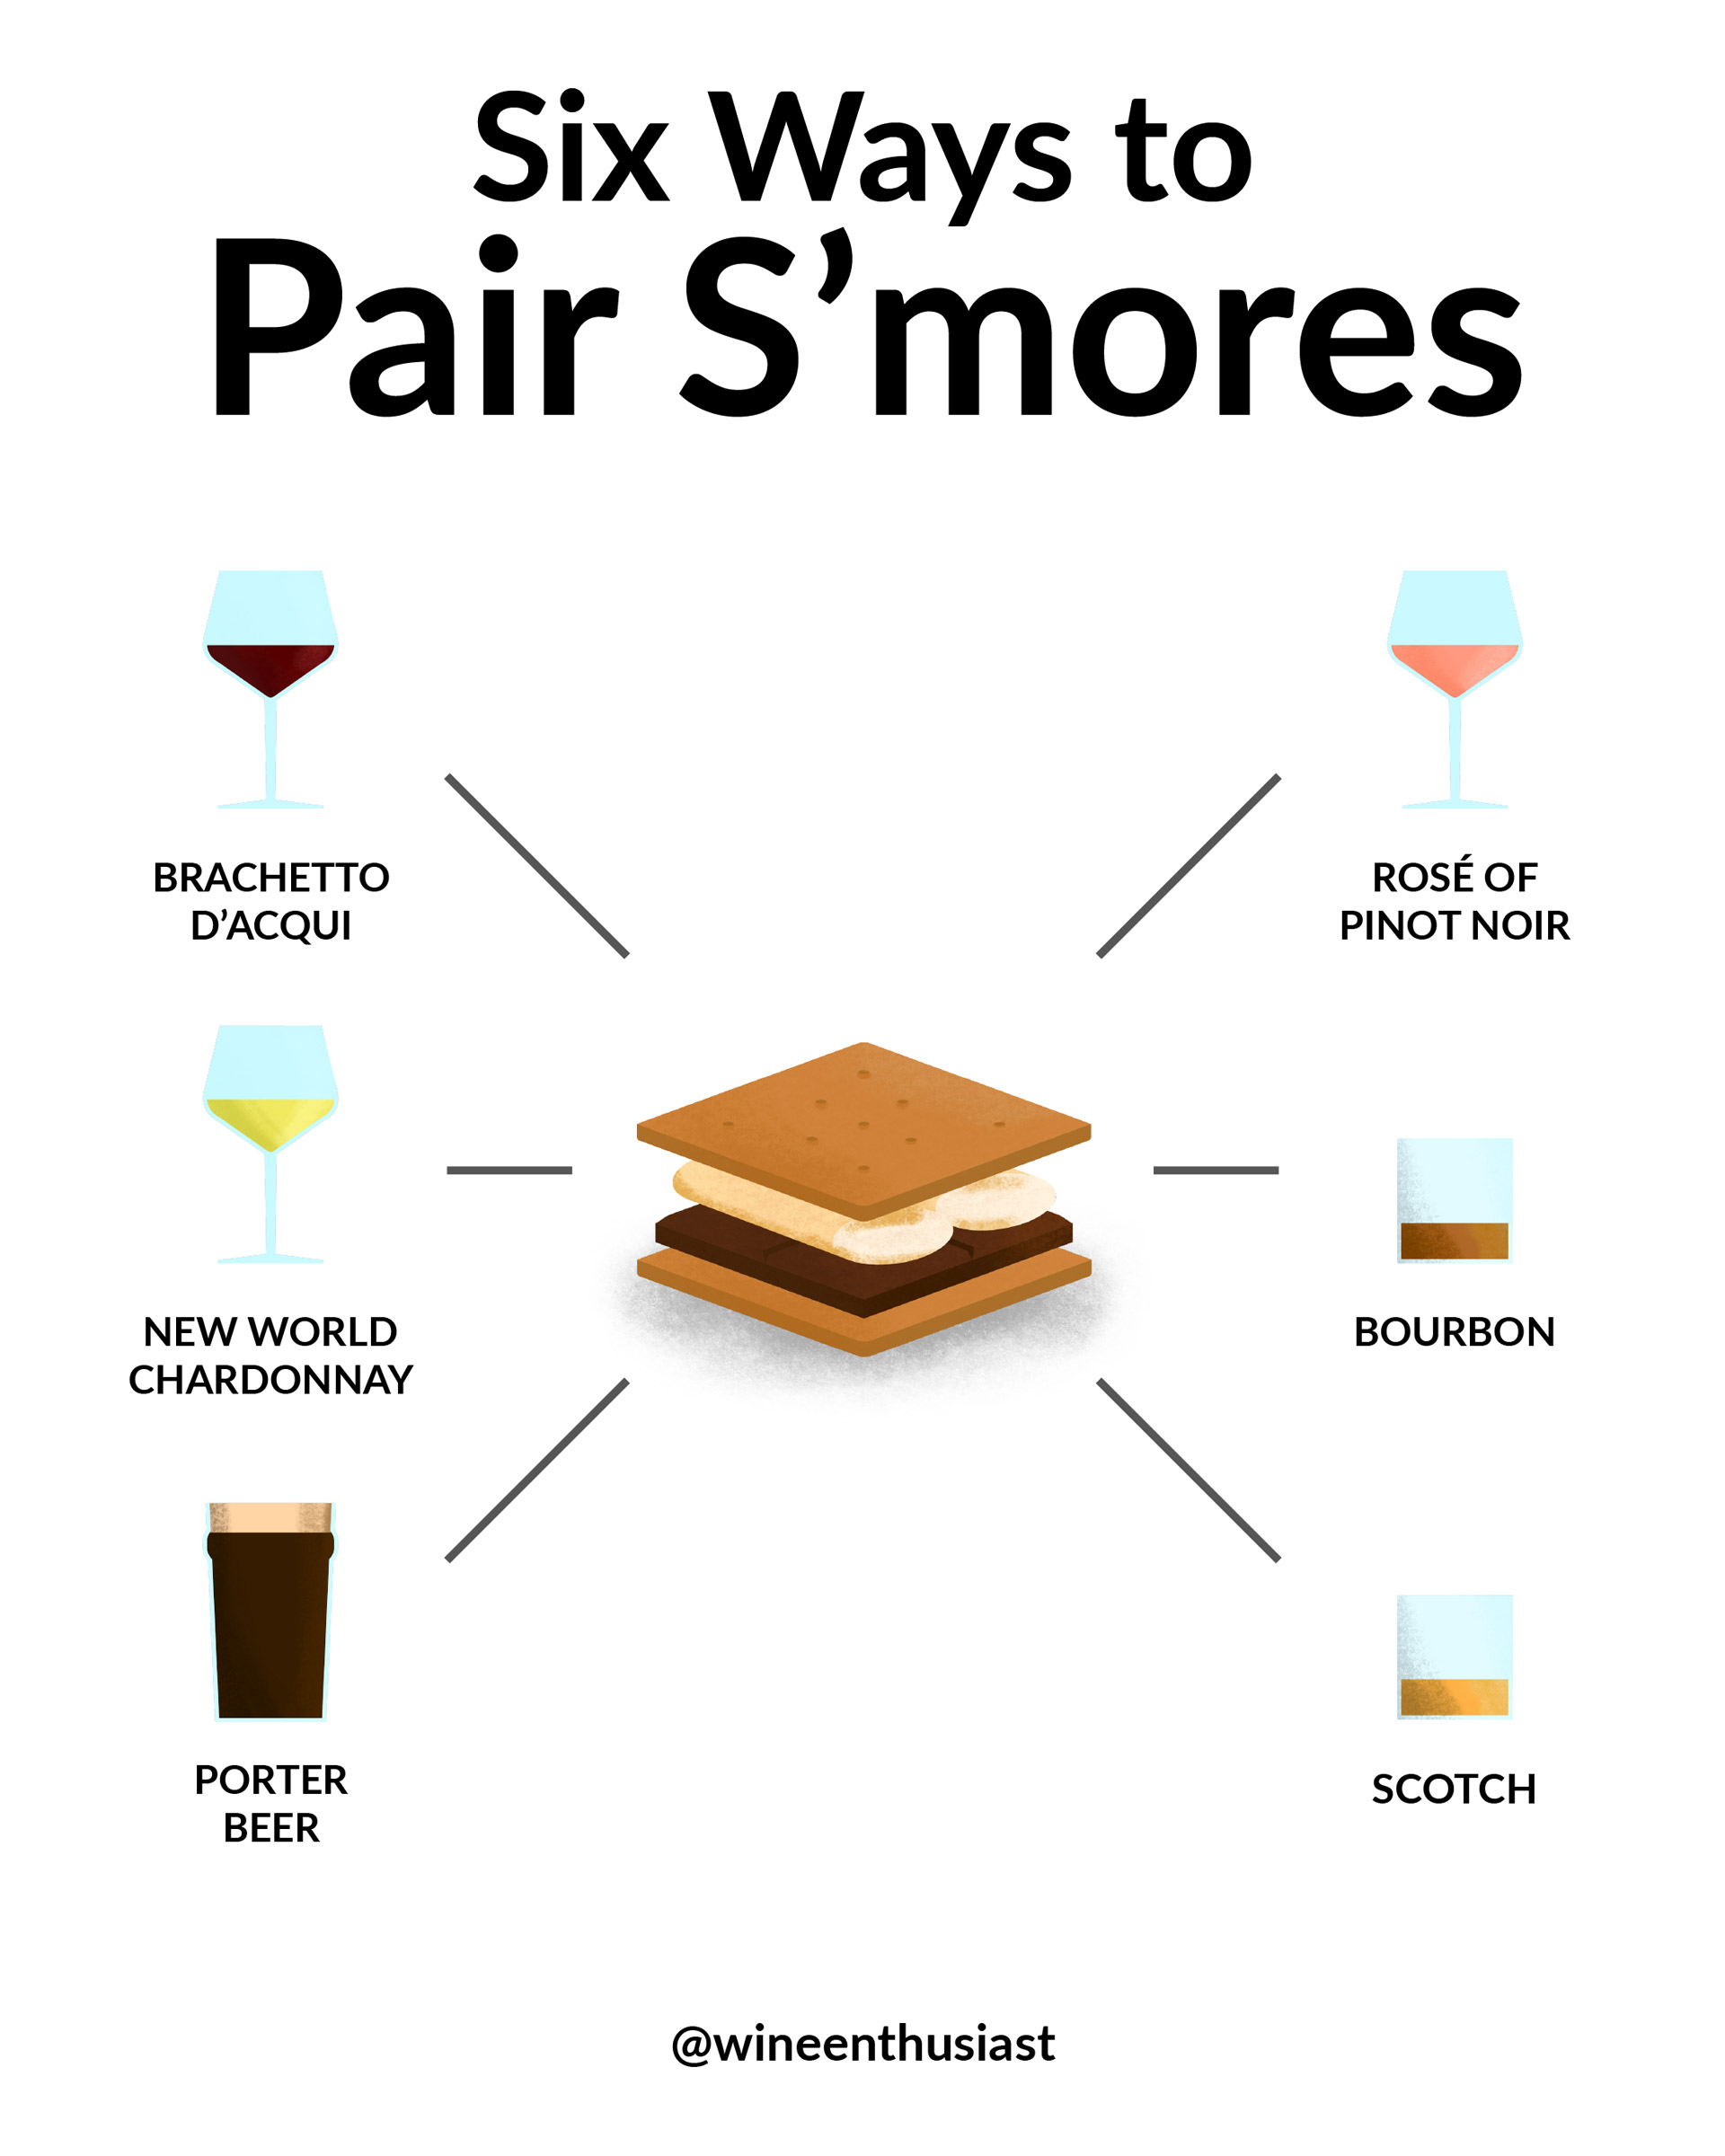 All the ways to pair s'mores with alcohol